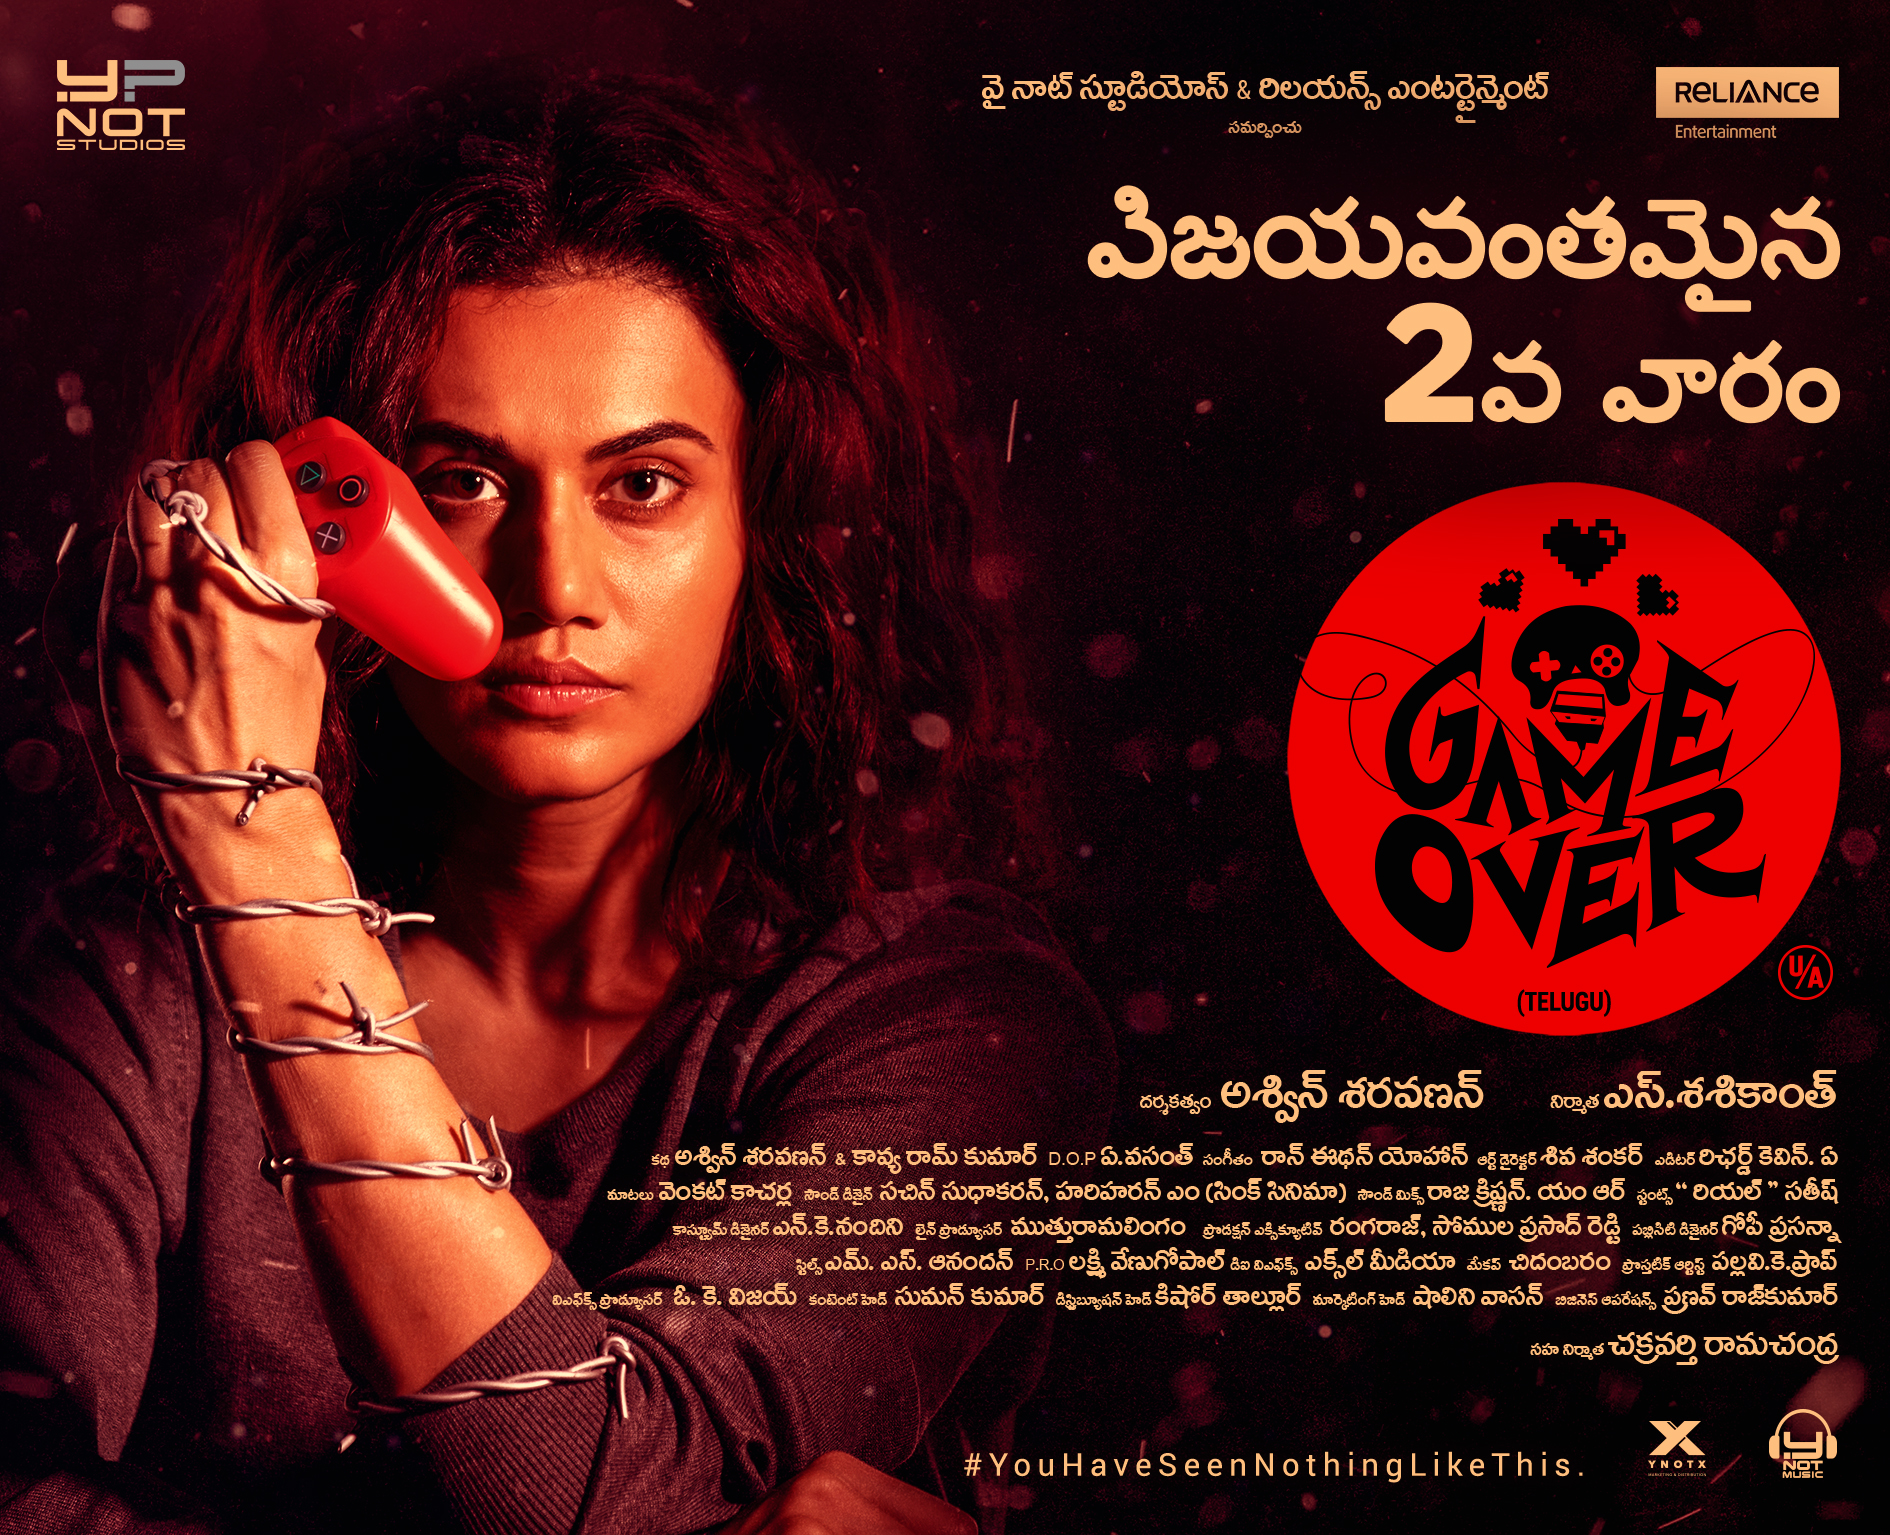 GameOver-Telugu-June22-01